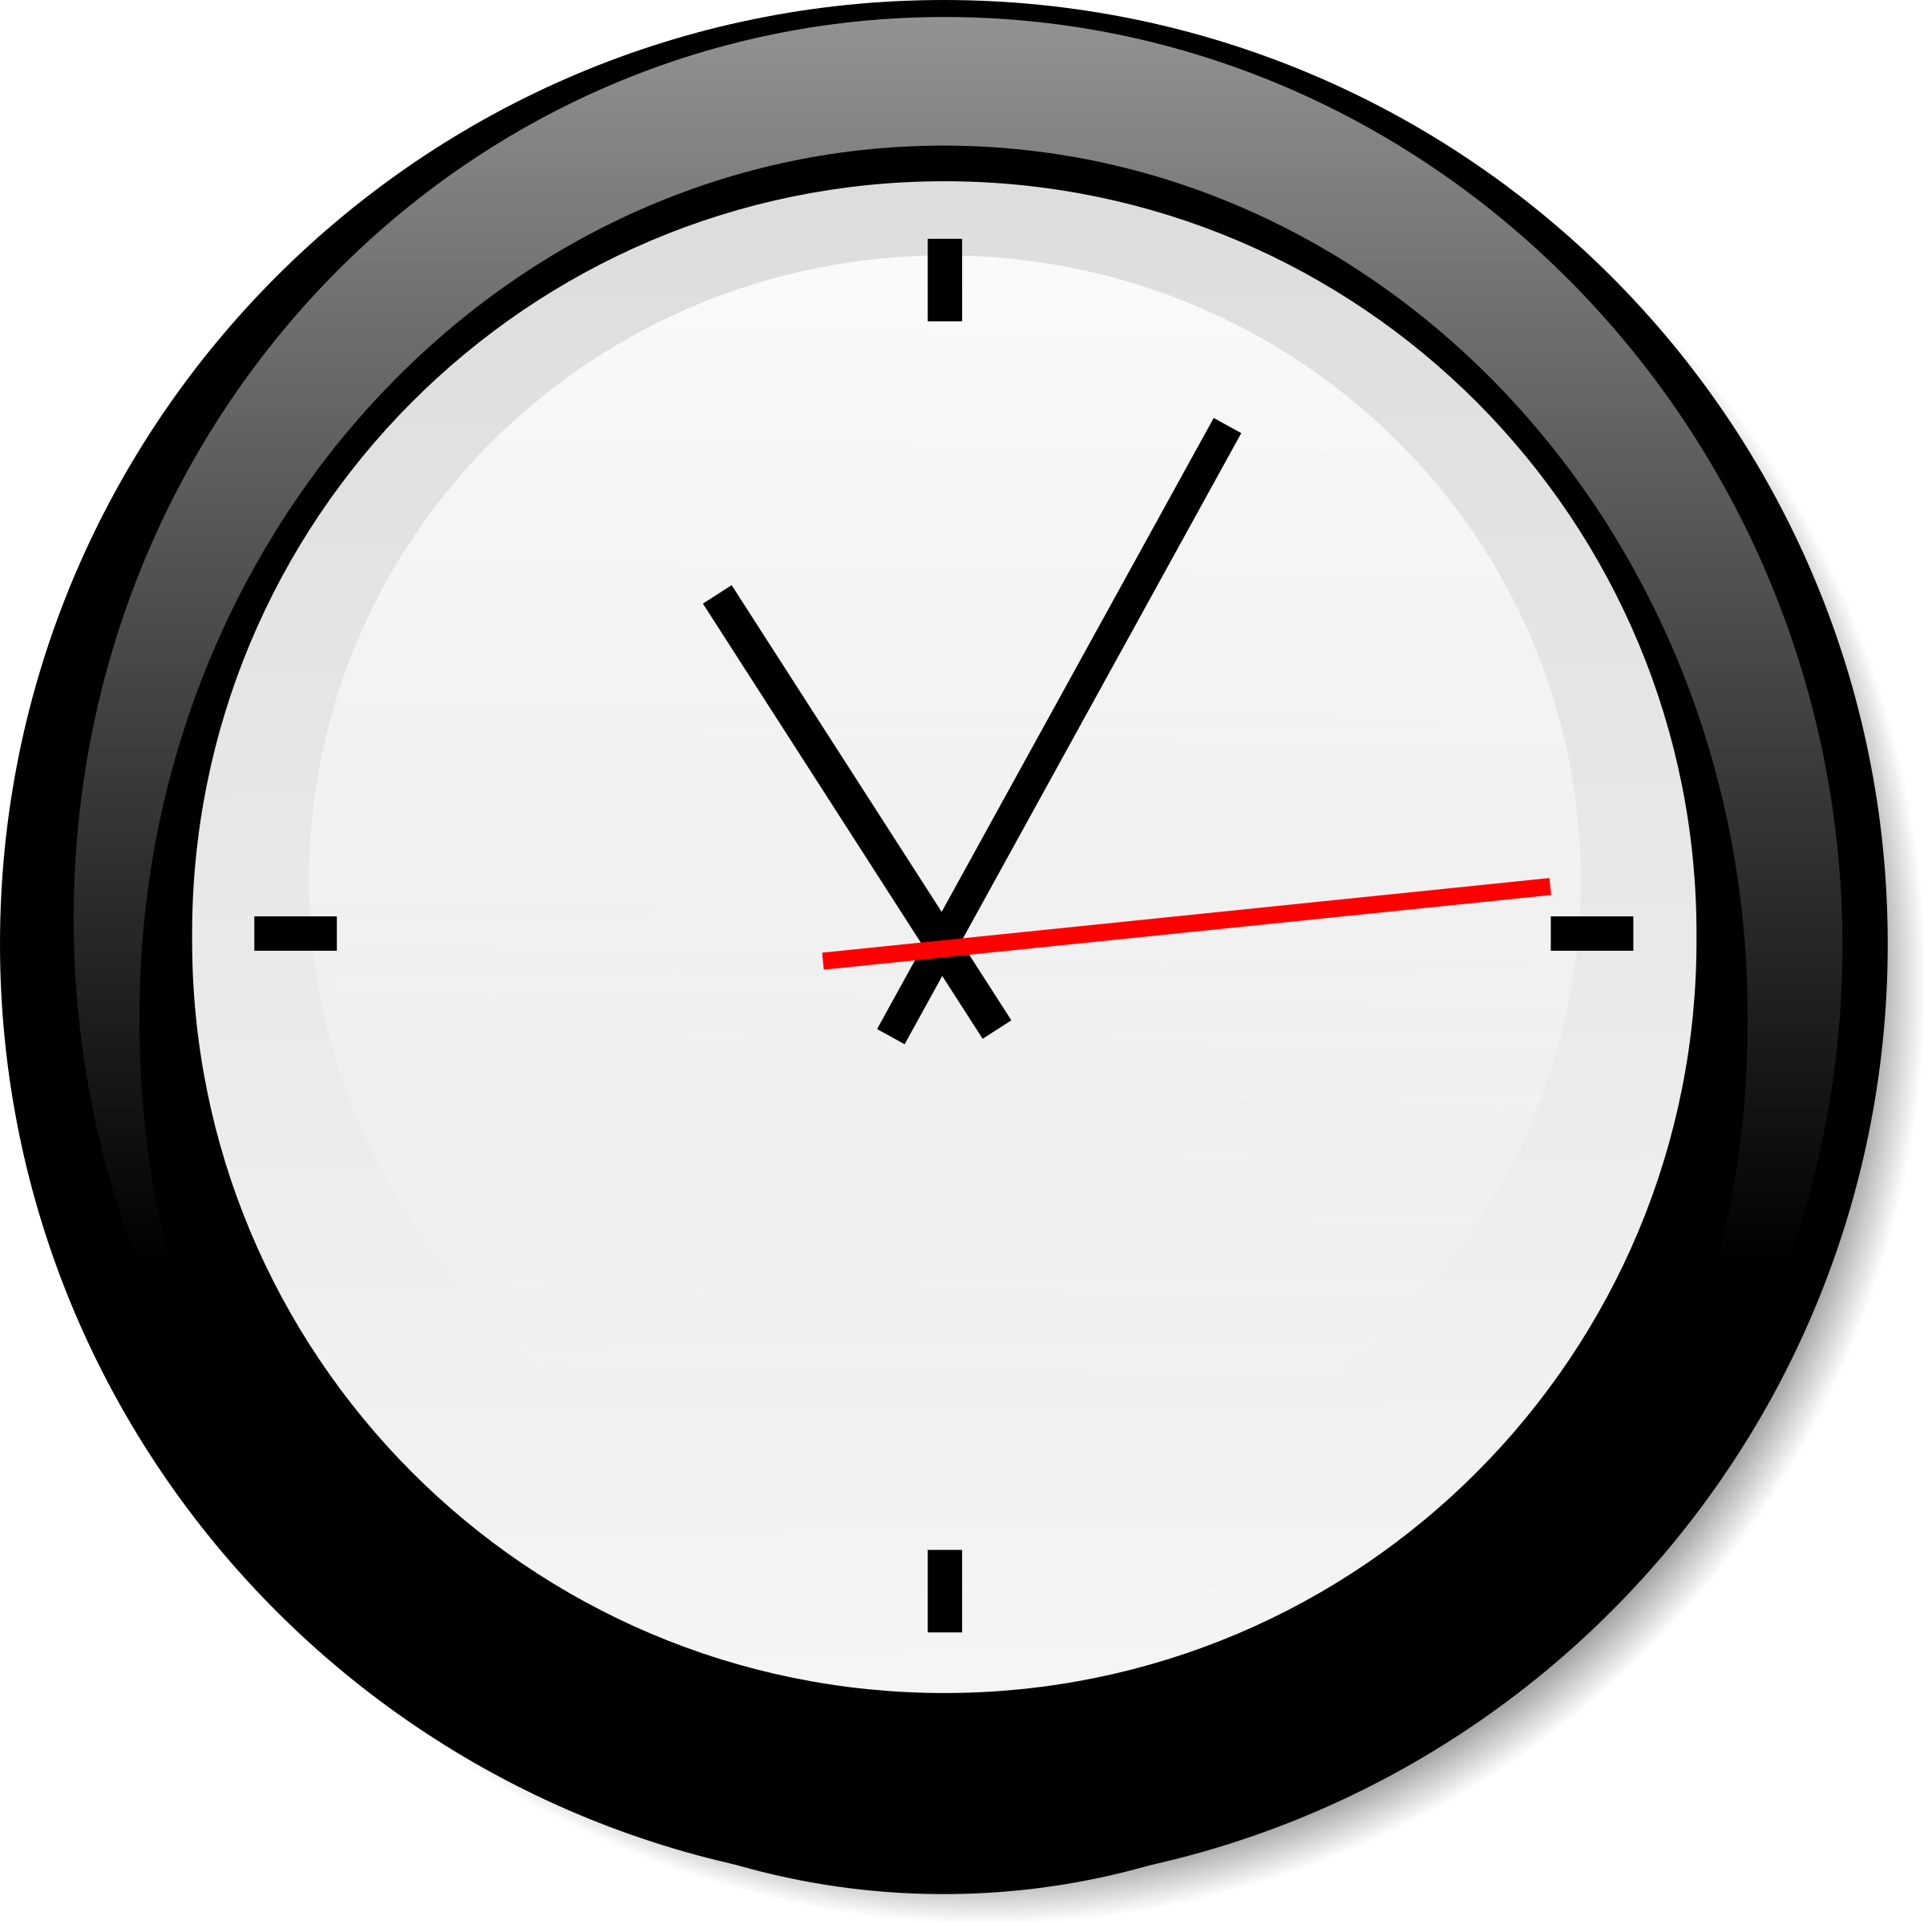 Oval pencil and in. Clock clipart 7 o clock